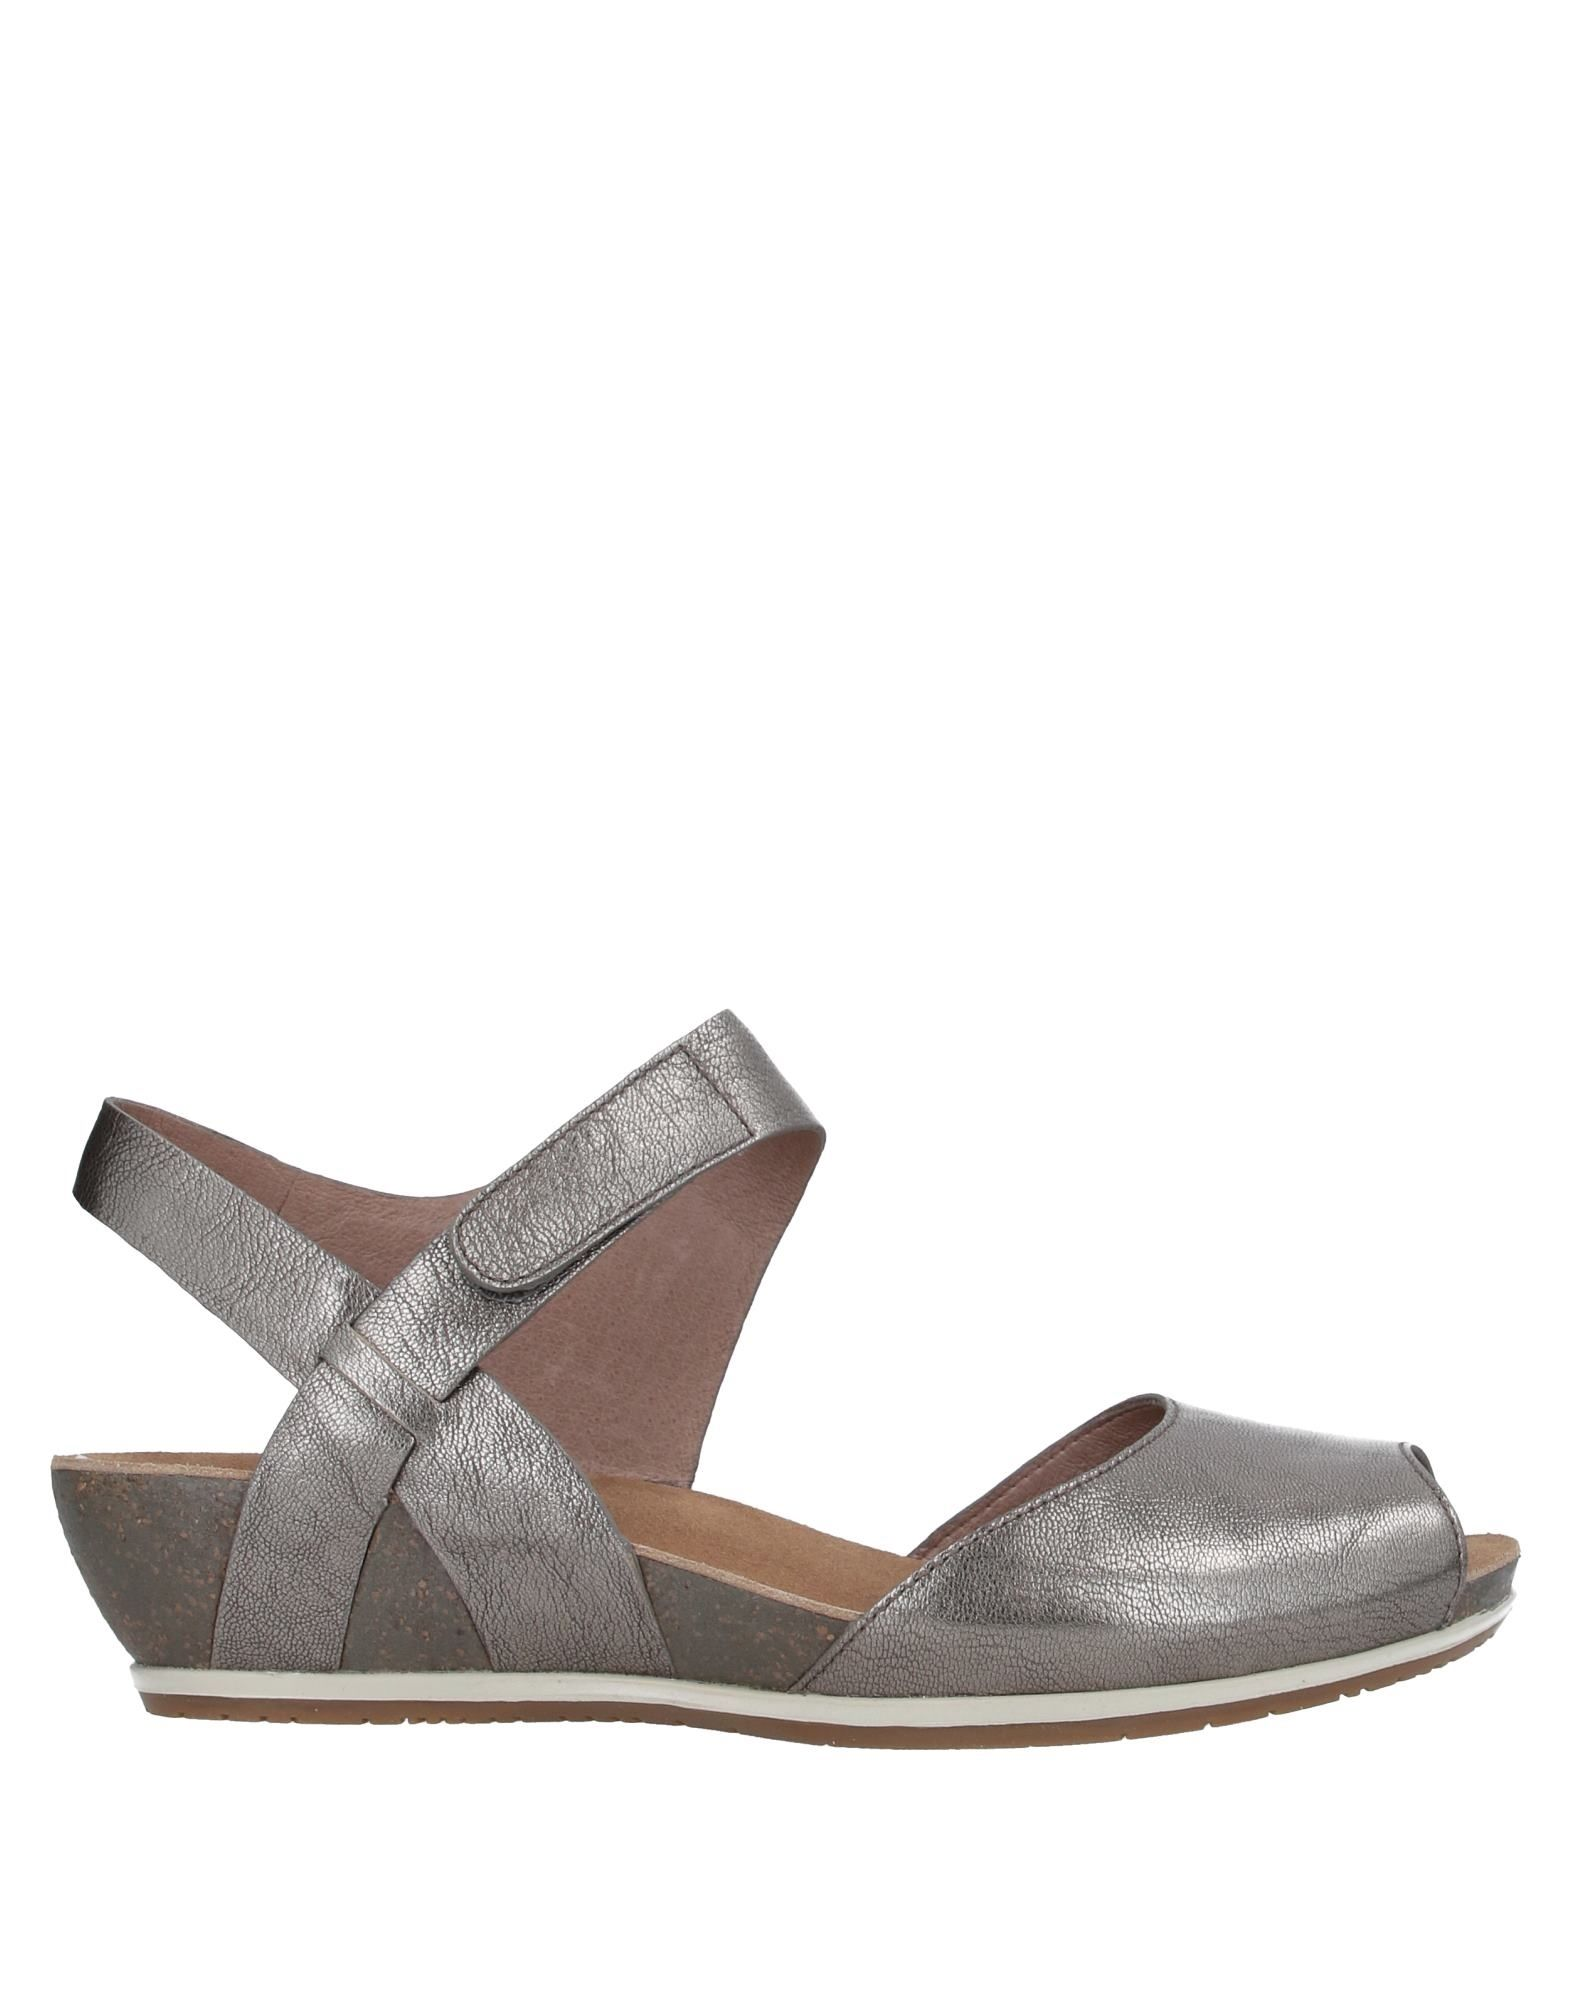 DANSKO Sandals. laminated effect, nappa leather, no appliqués, solid color, velcro closure, round toeline, wedge heel, leather lining, rubber cleated sole, contains non-textile parts of animal origin. Soft Leather